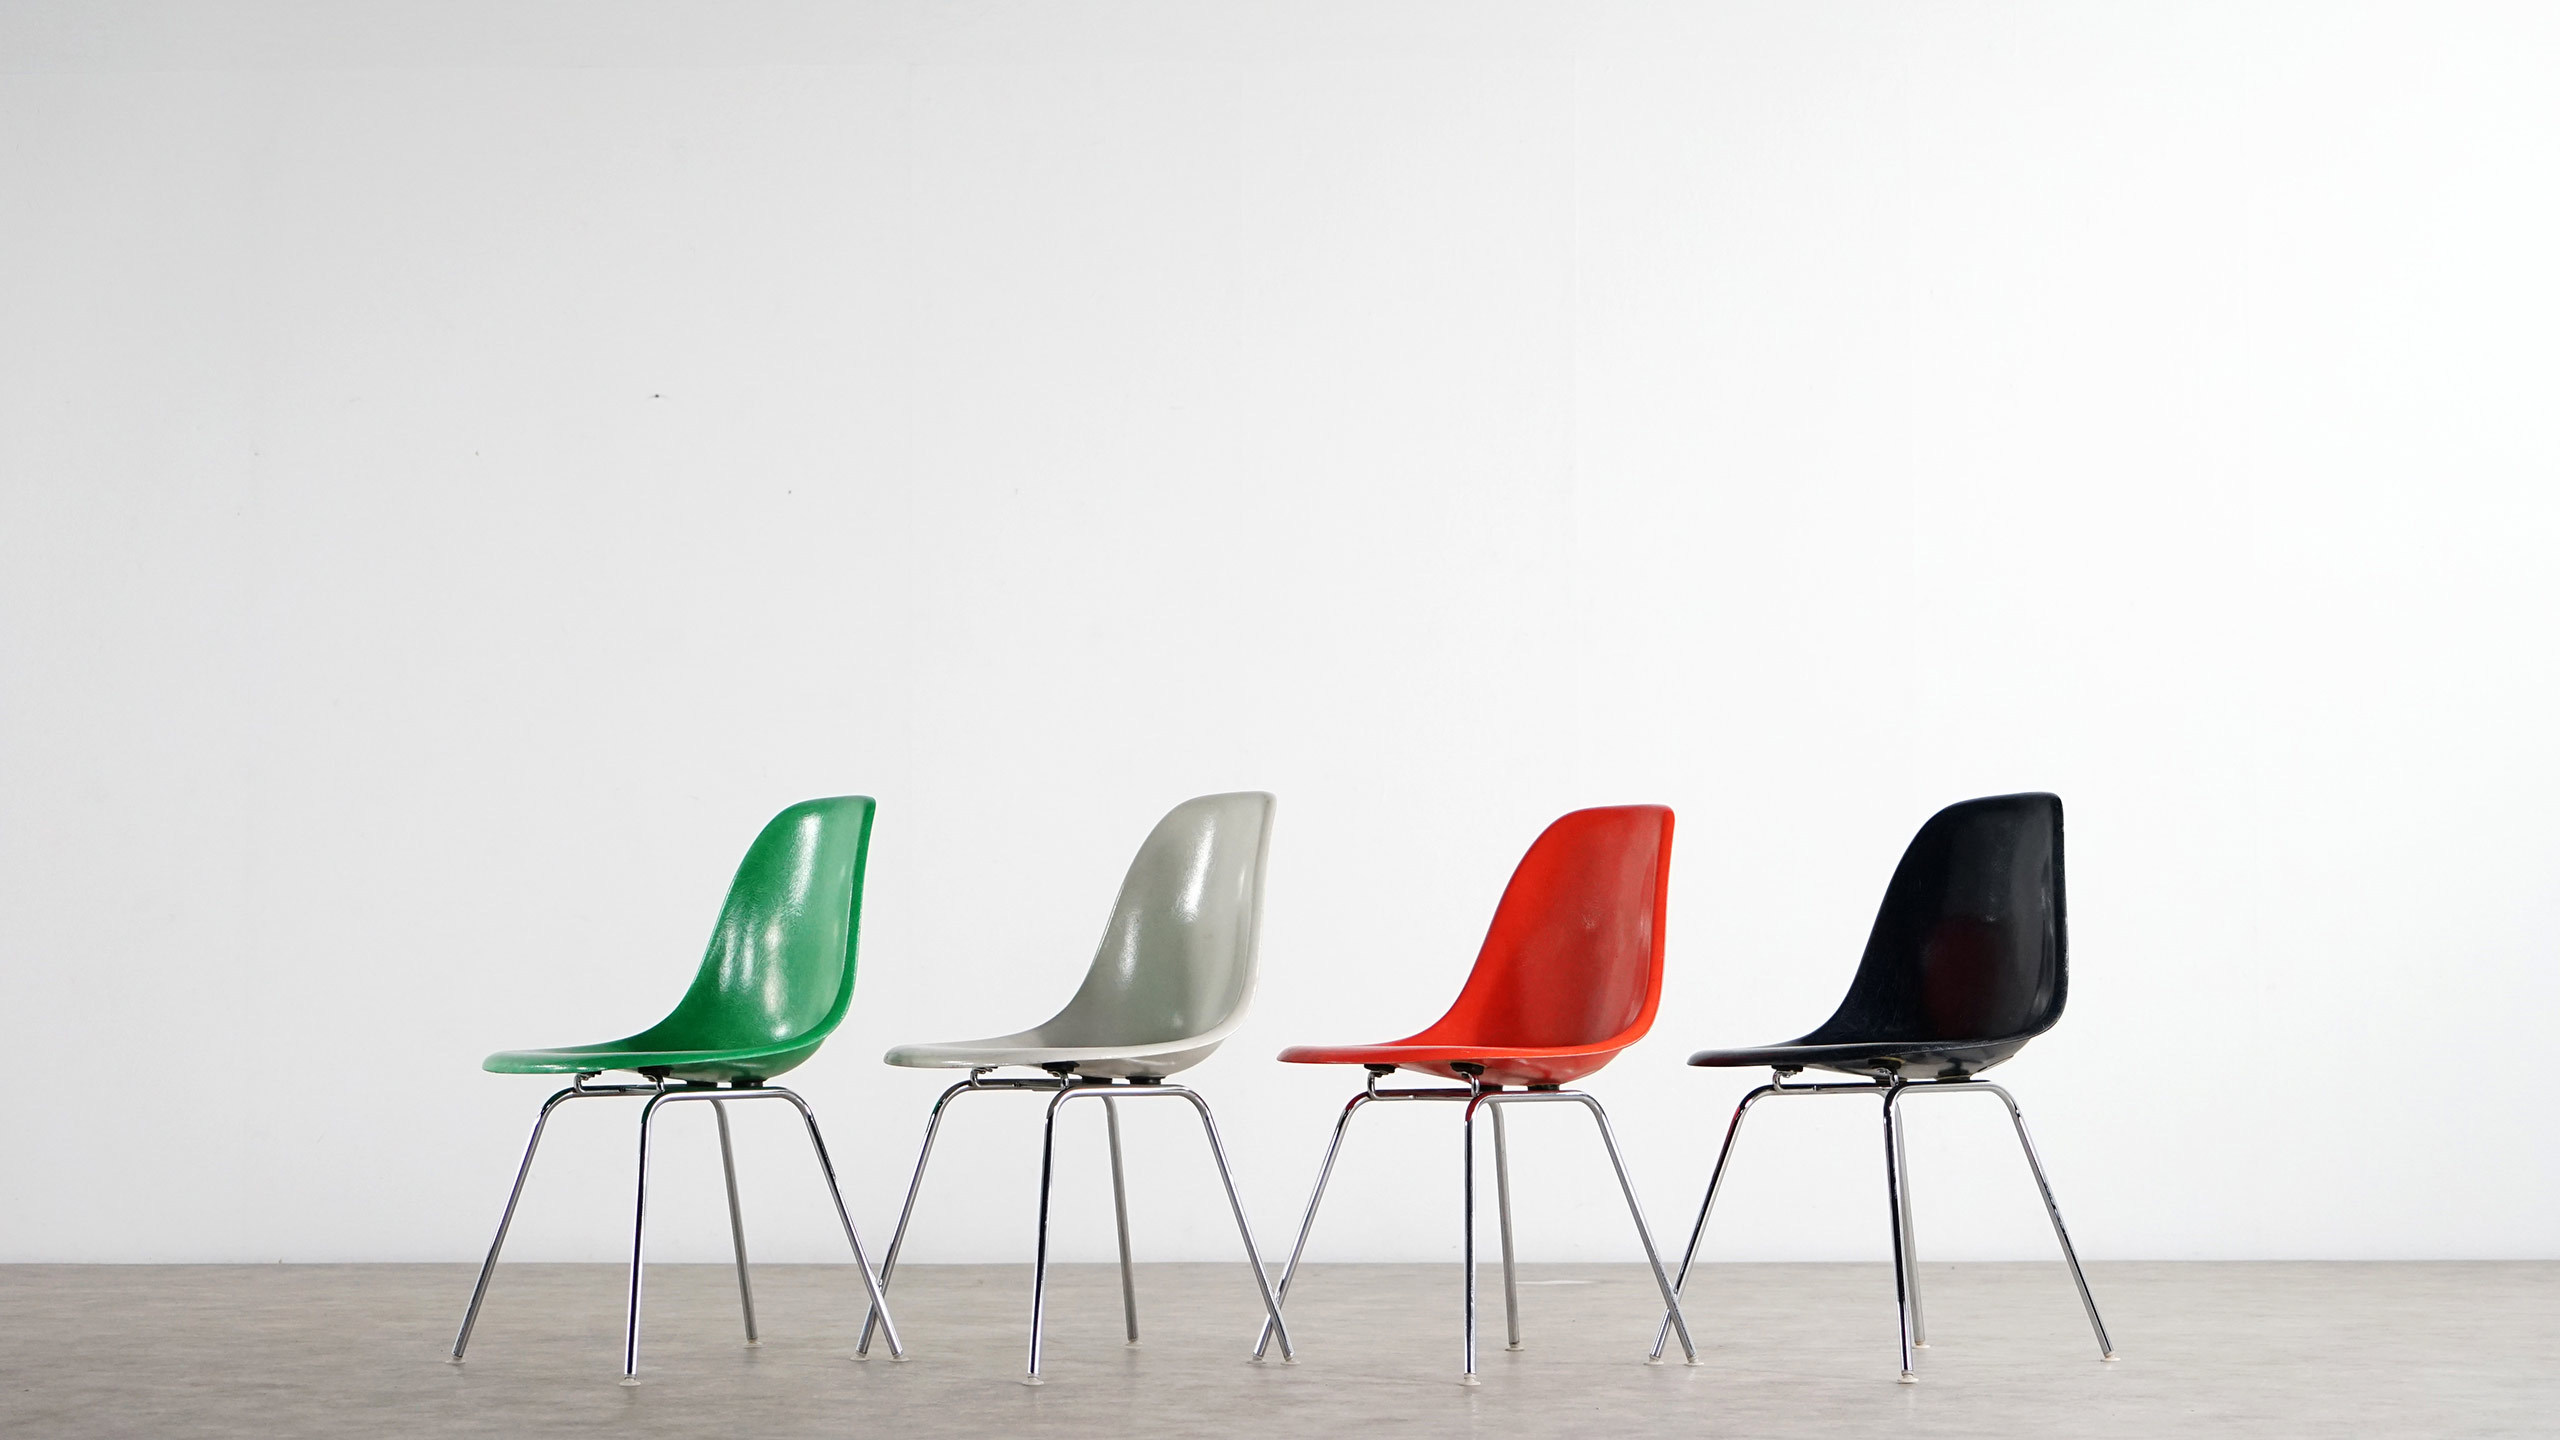 Charles eames set of 4 diff colored sidechairs for Eames chair prix